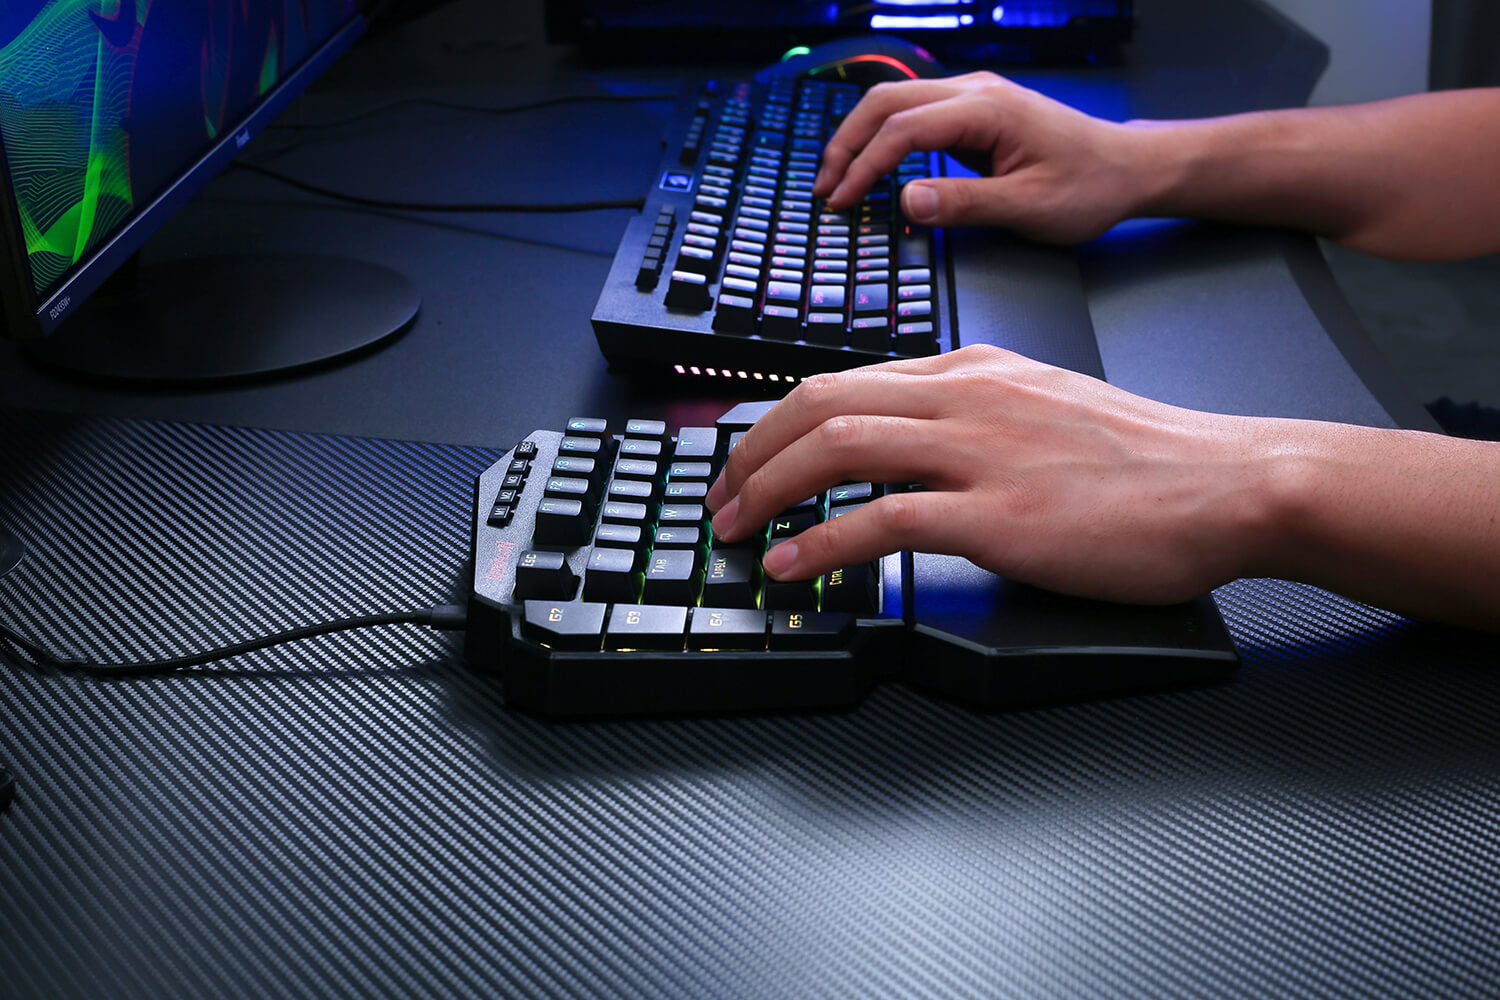 redragon one-handed gaming keyboard